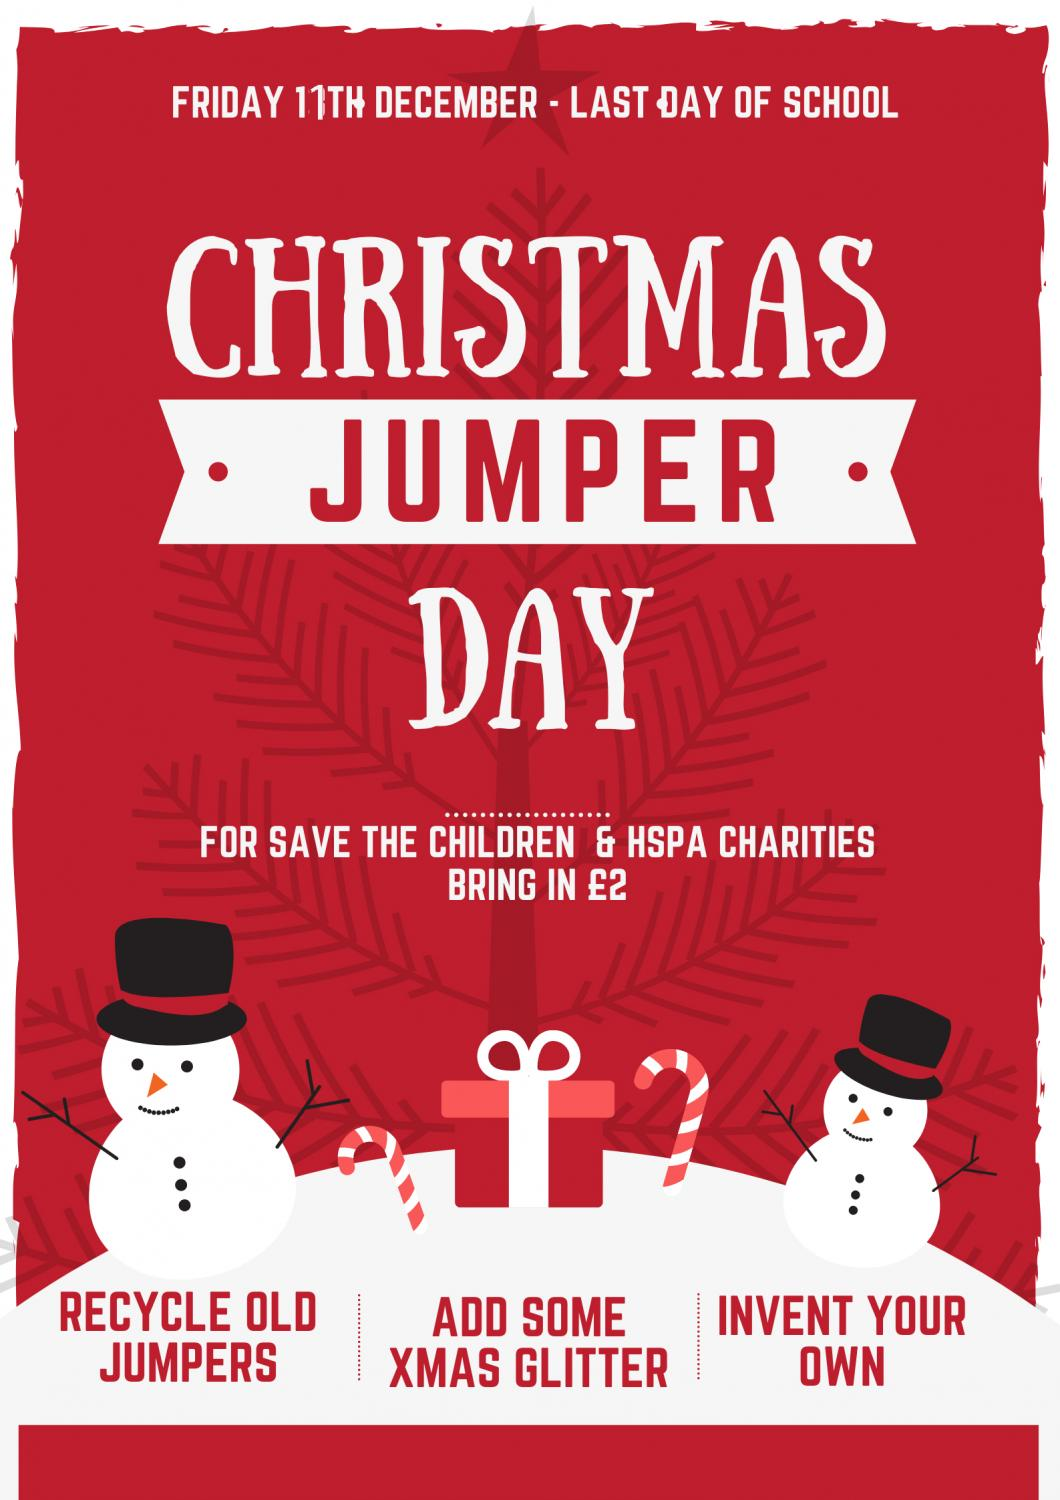 Jumpers%20final%20poster.jpg